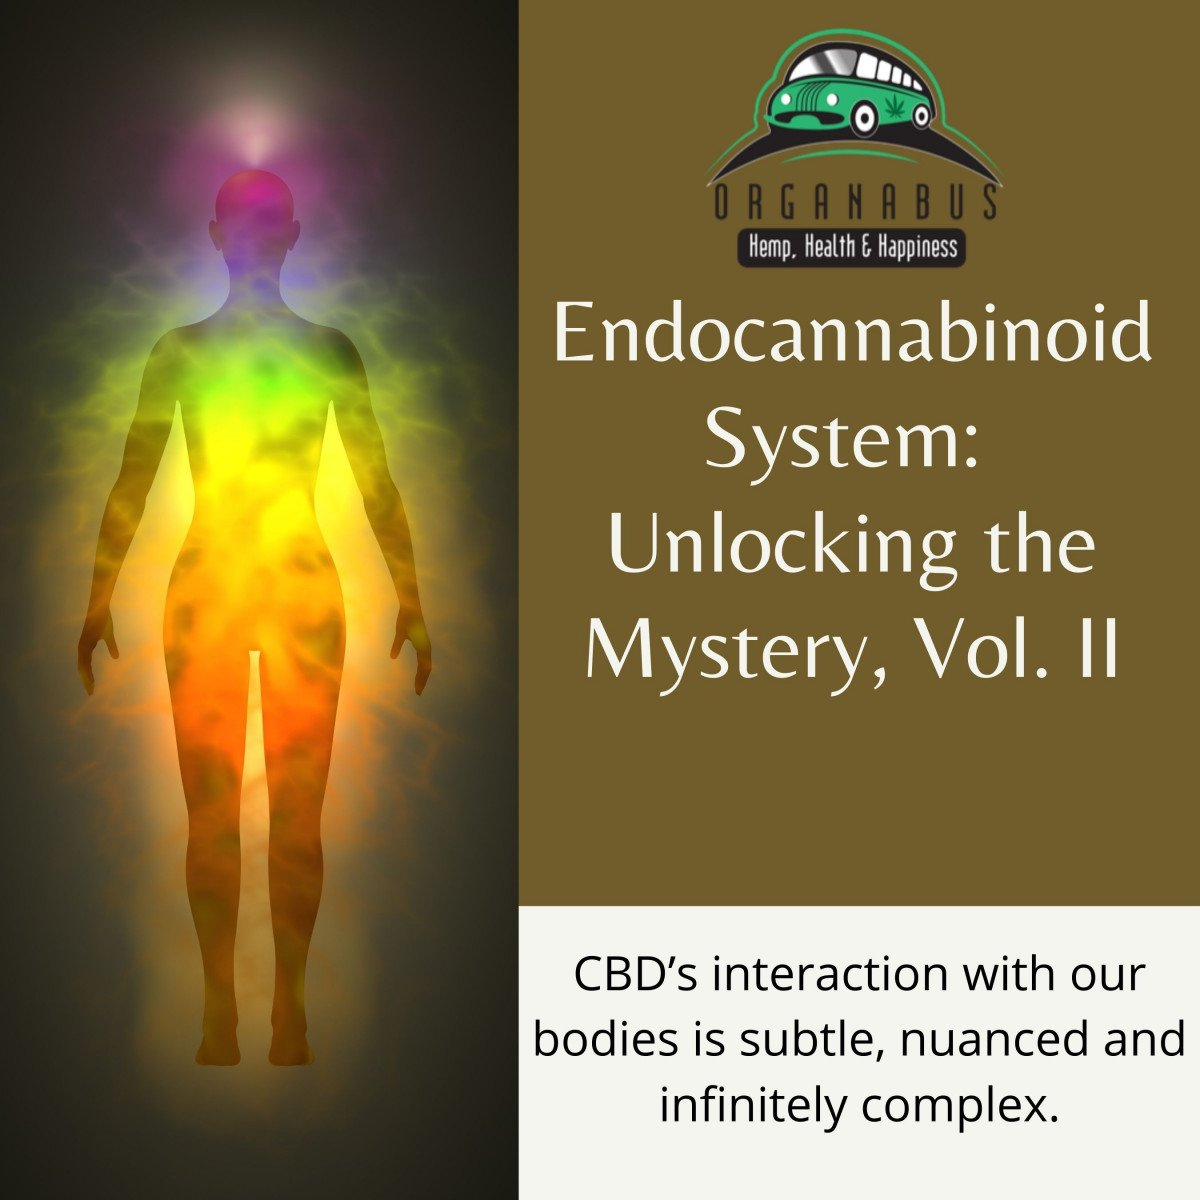 Endocannabinoid System: CBD Unlocking the Mystery, Vol. II